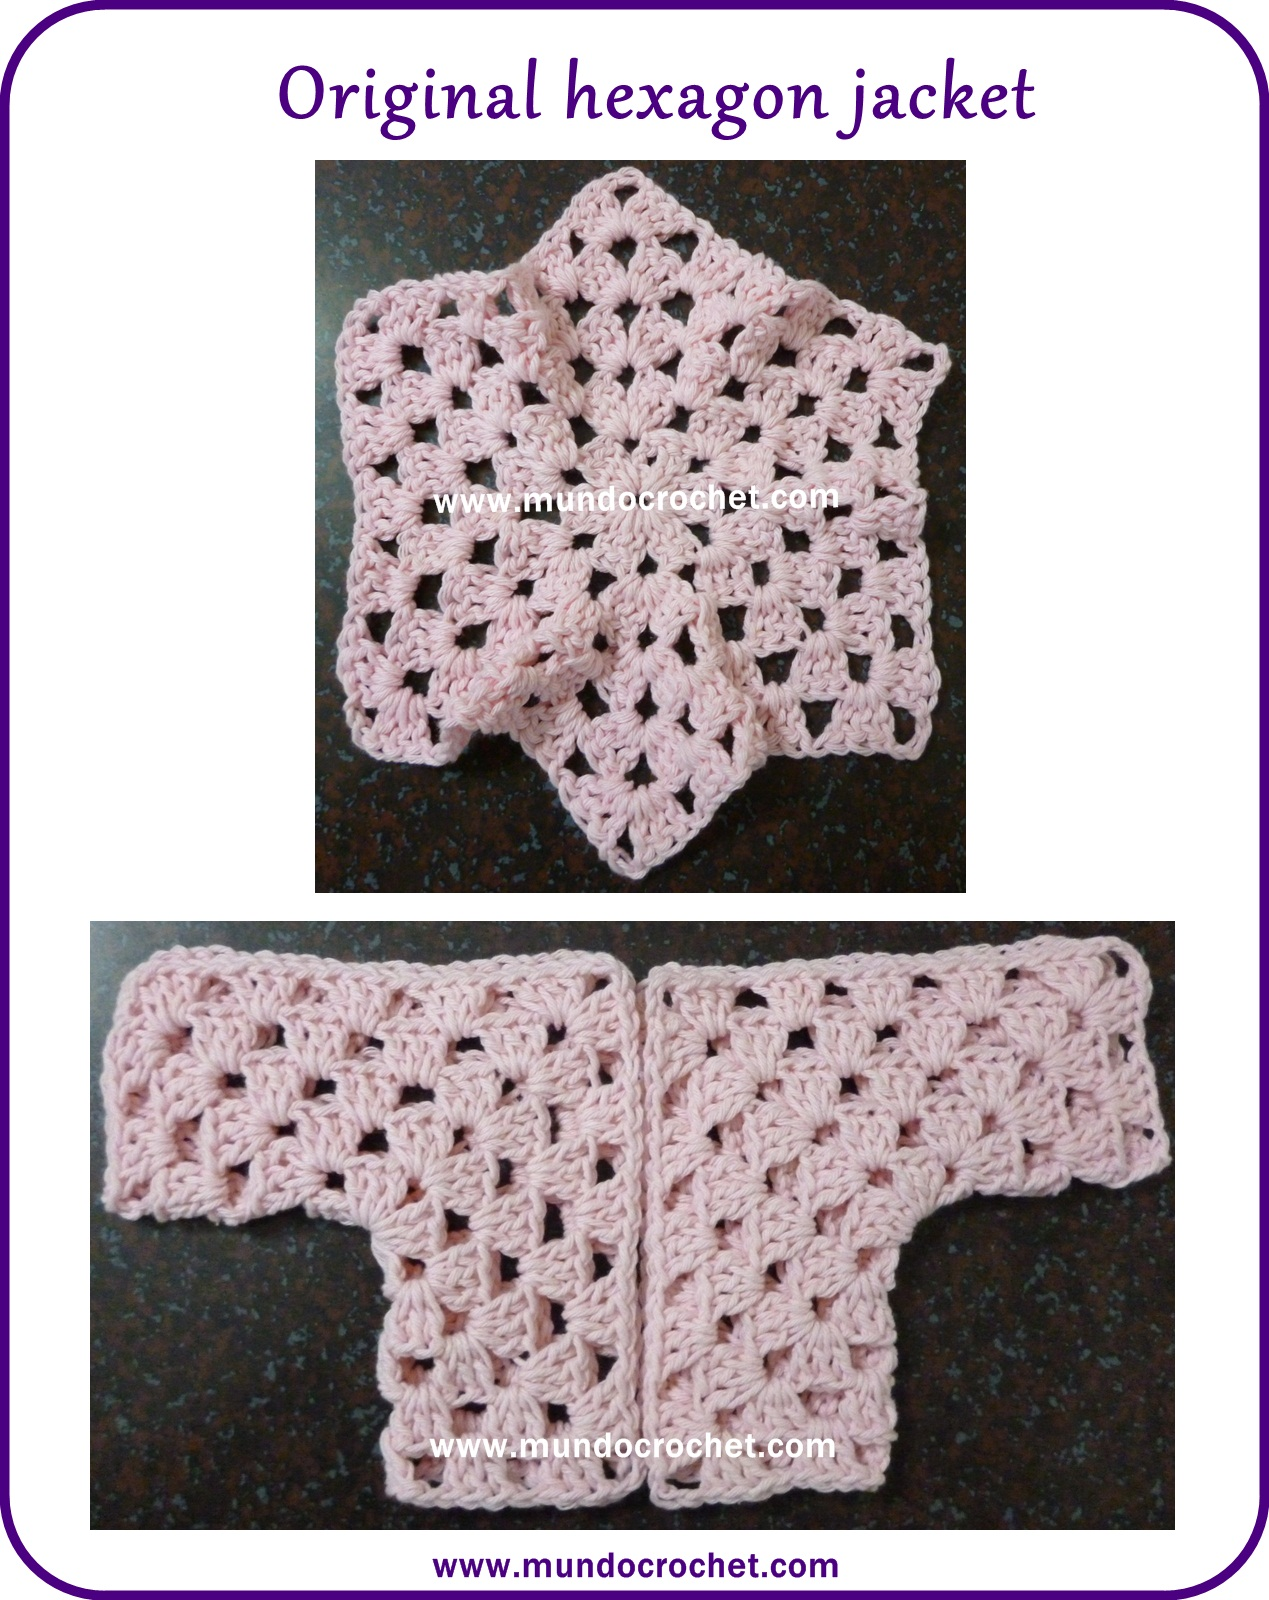 Crochet baby hexagon jacket